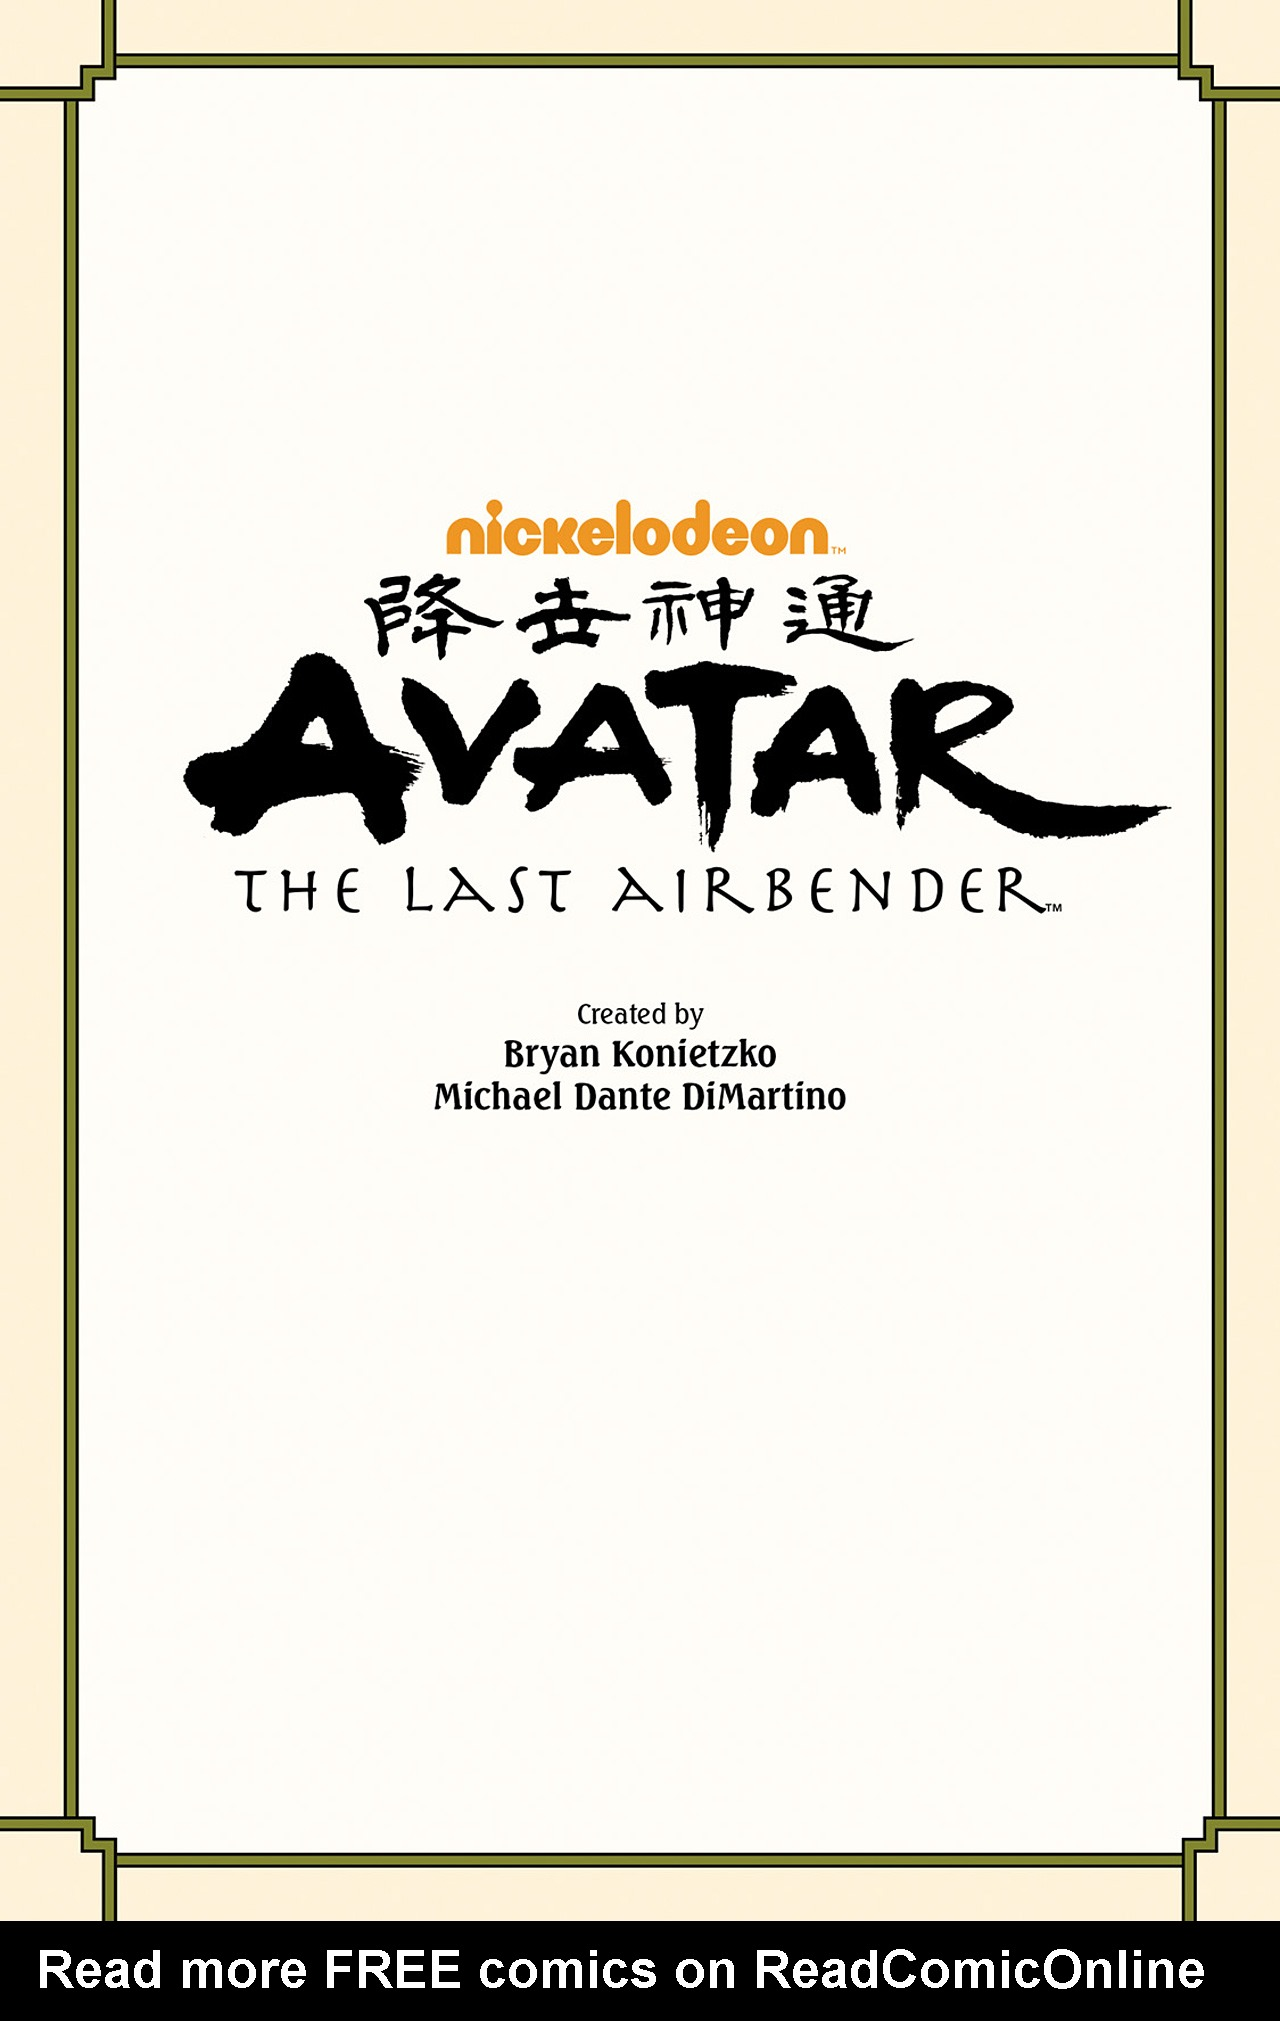 Read online Nickelodeon Avatar: The Last Airbender - The Search comic -  Issue # Part 2 - 2